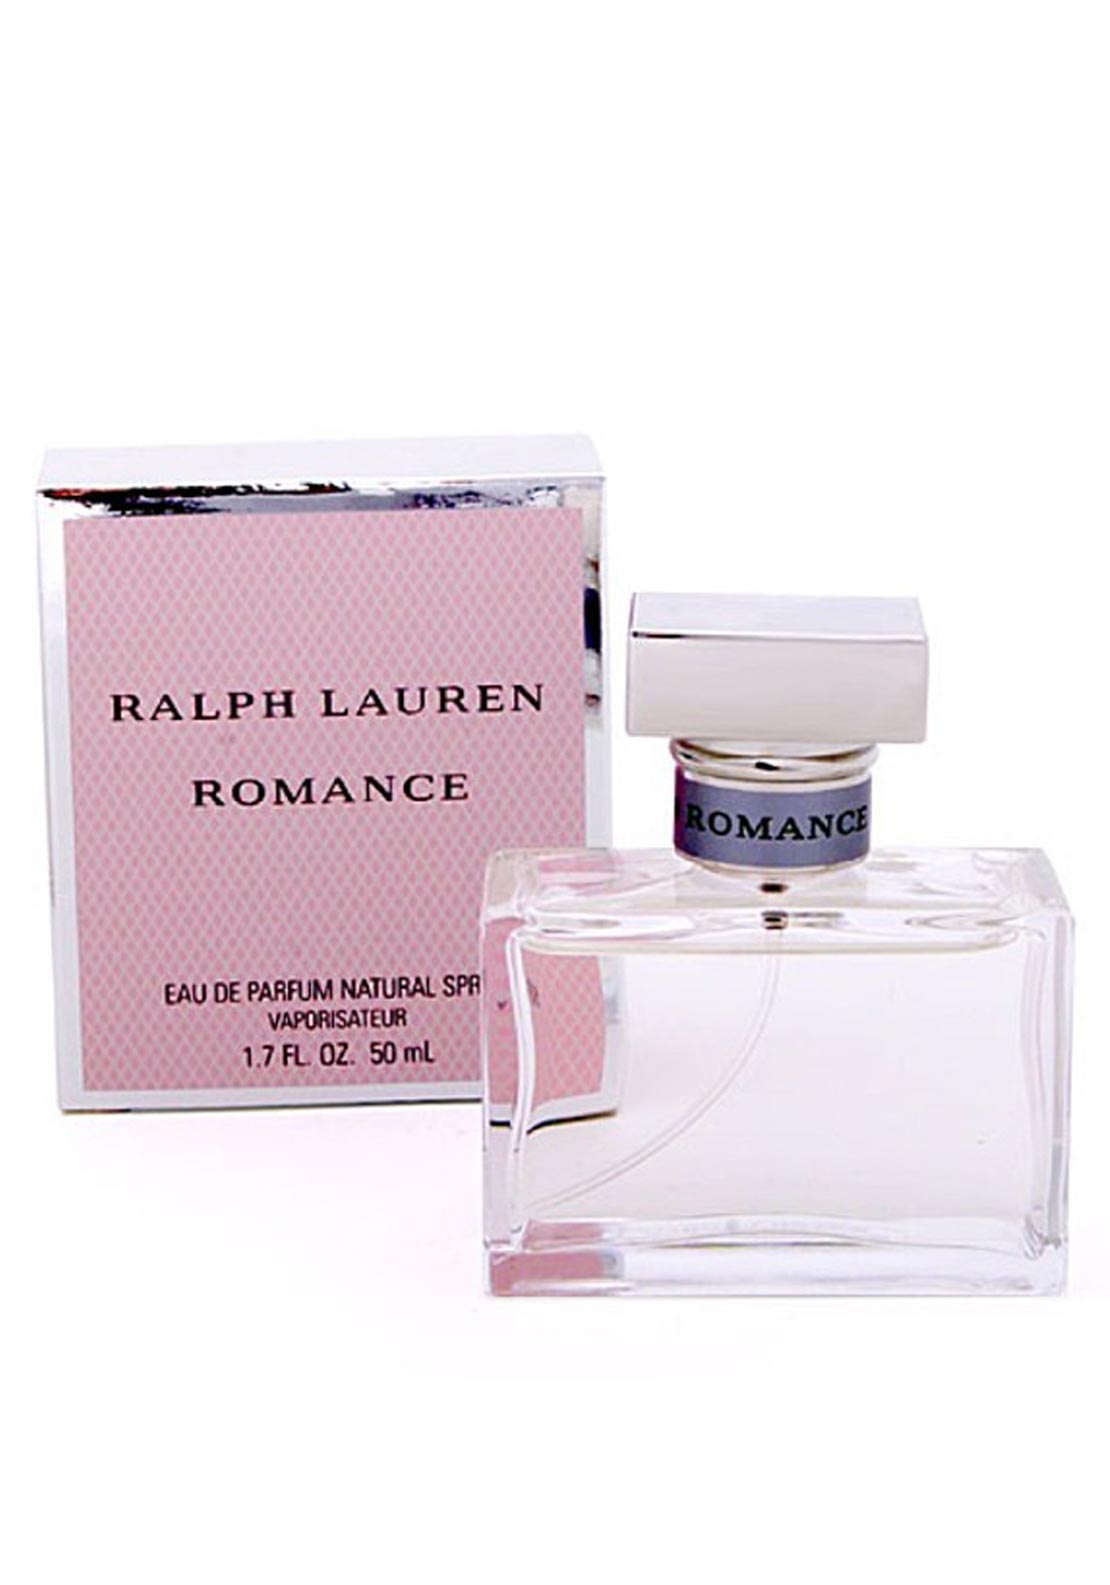 Romance by Ralph Lauren Eau de Parfum Natural Spray, 50ml